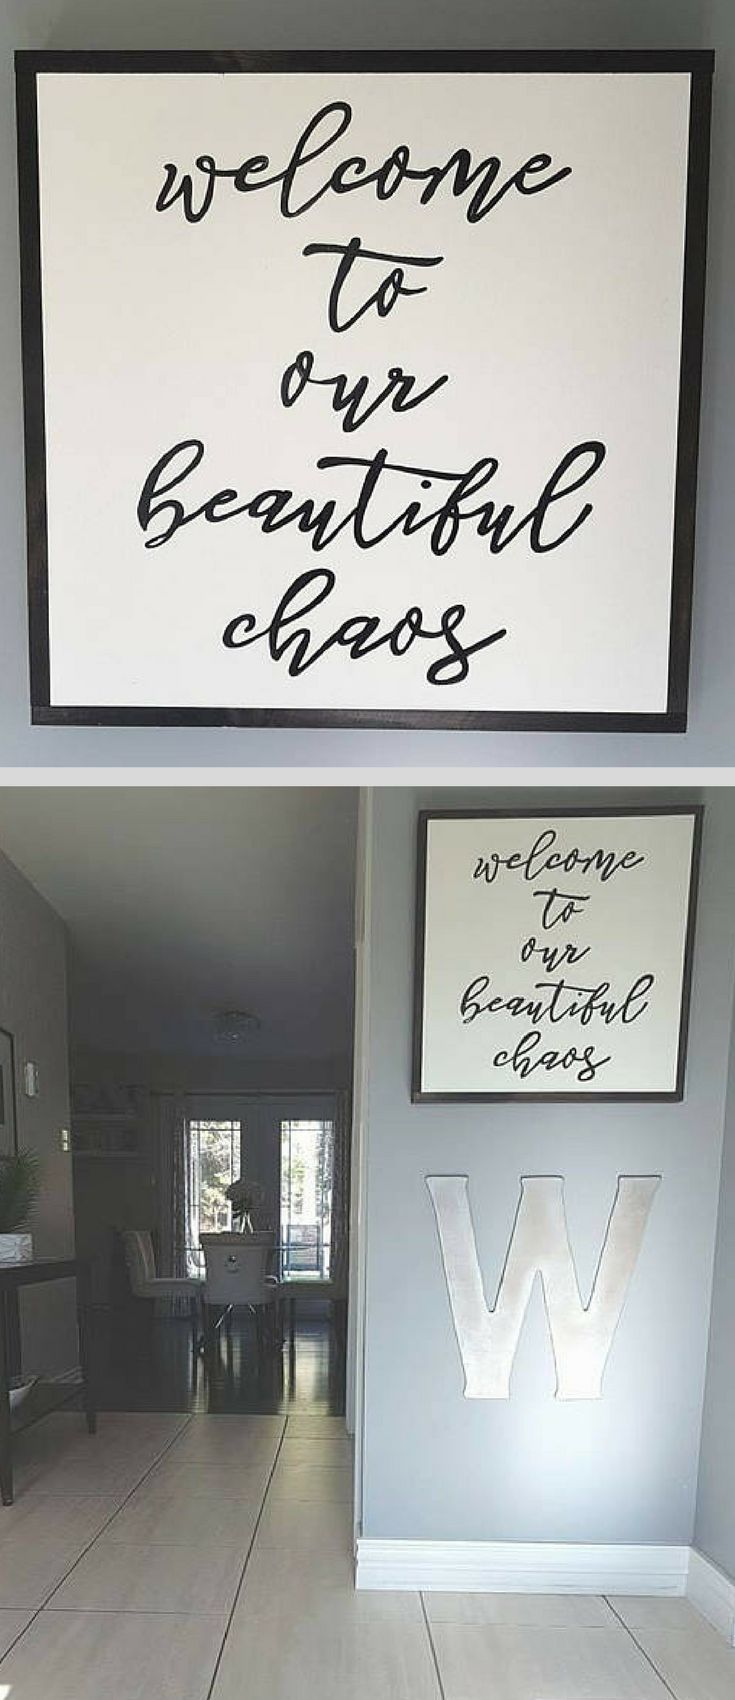 Perfect entryway sign for anyone with young and wild kids! Welcome to our beautiful chaos wood sign, home decor, rustic wall decor, farmhouse decor, living room sign #ad #kidsroom